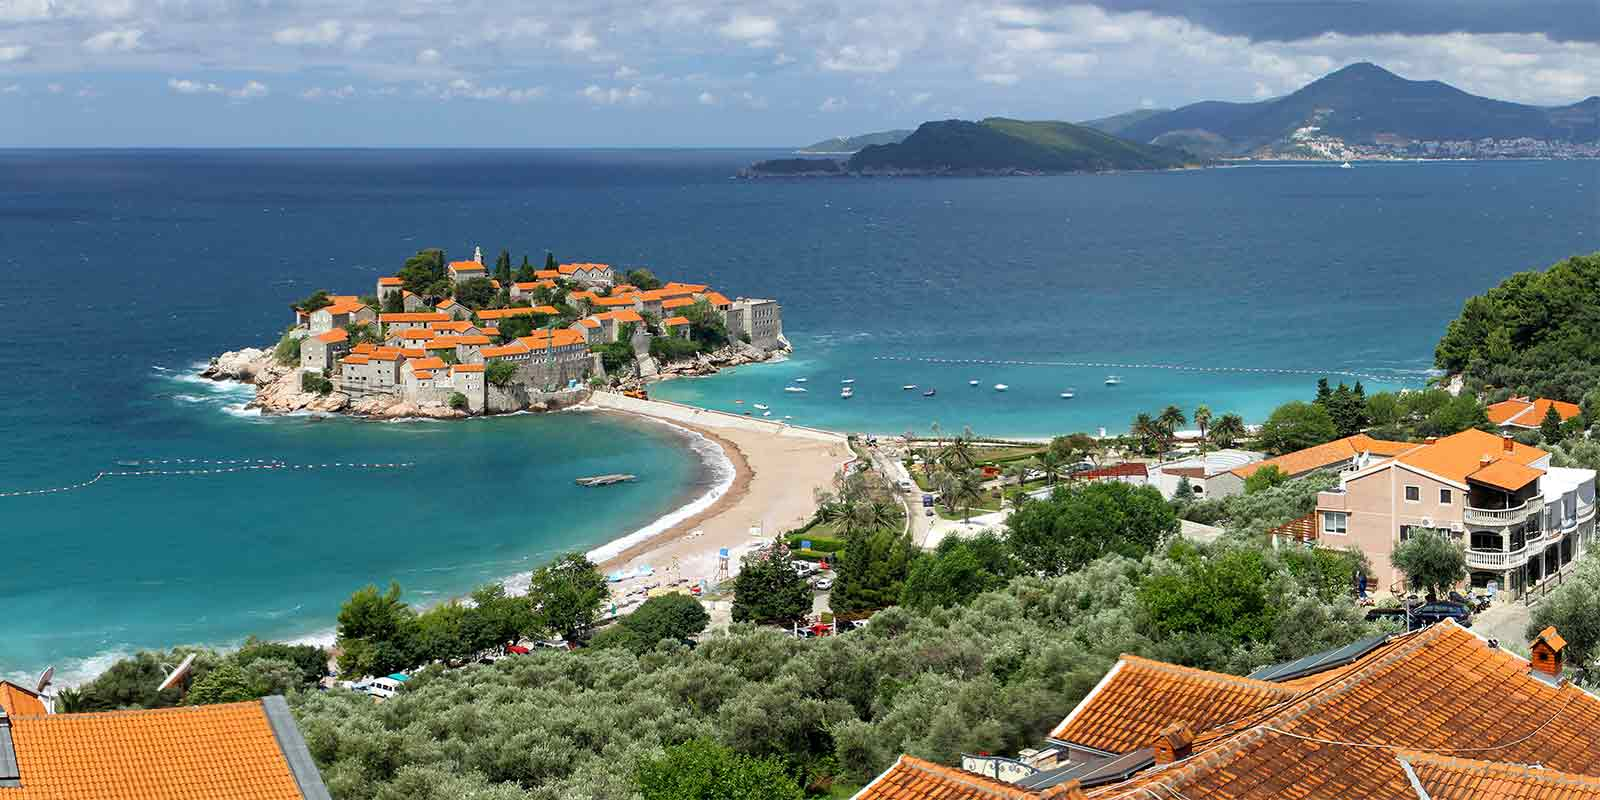 View of Sveti Stefan Island on the Adriatic Coast